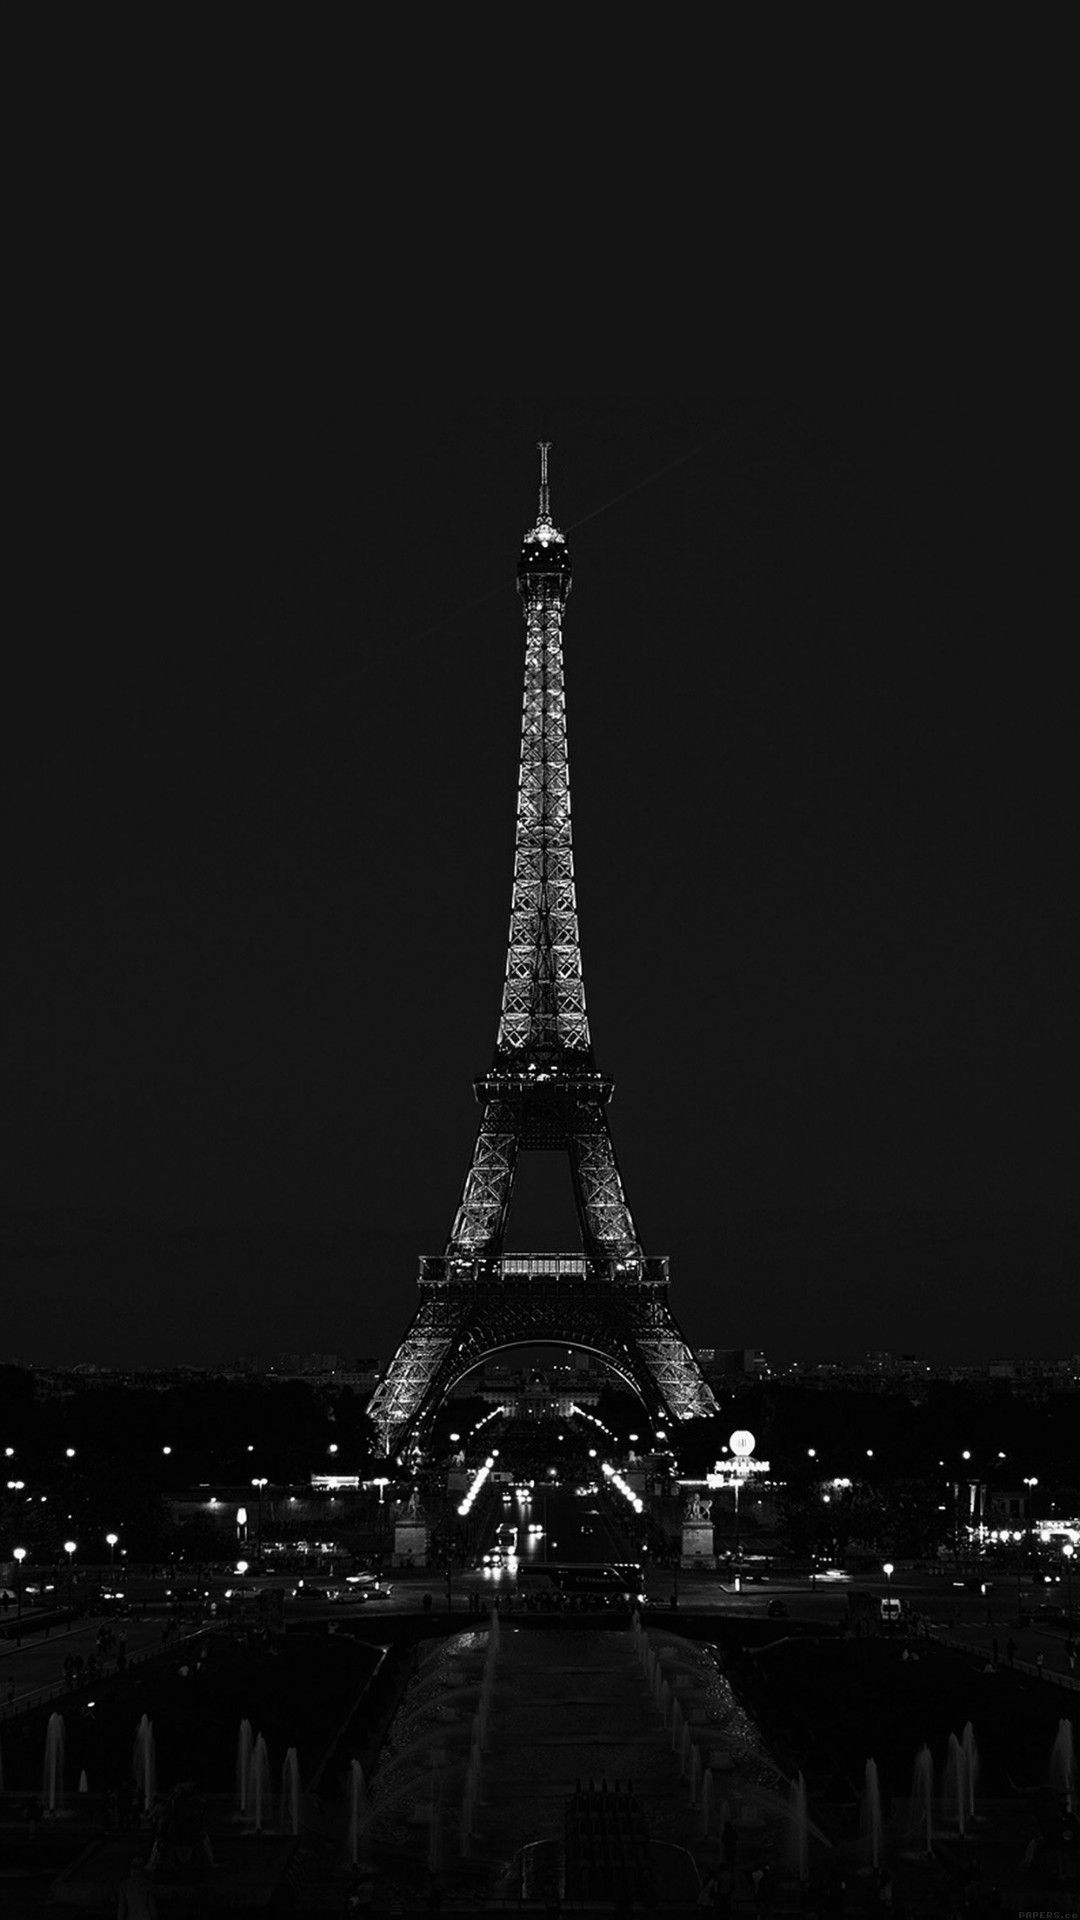 Eiffel Tower At Night Black And White Dark Wallpaper Iphone Paris Wallpaper Paris Wallpaper Iphone